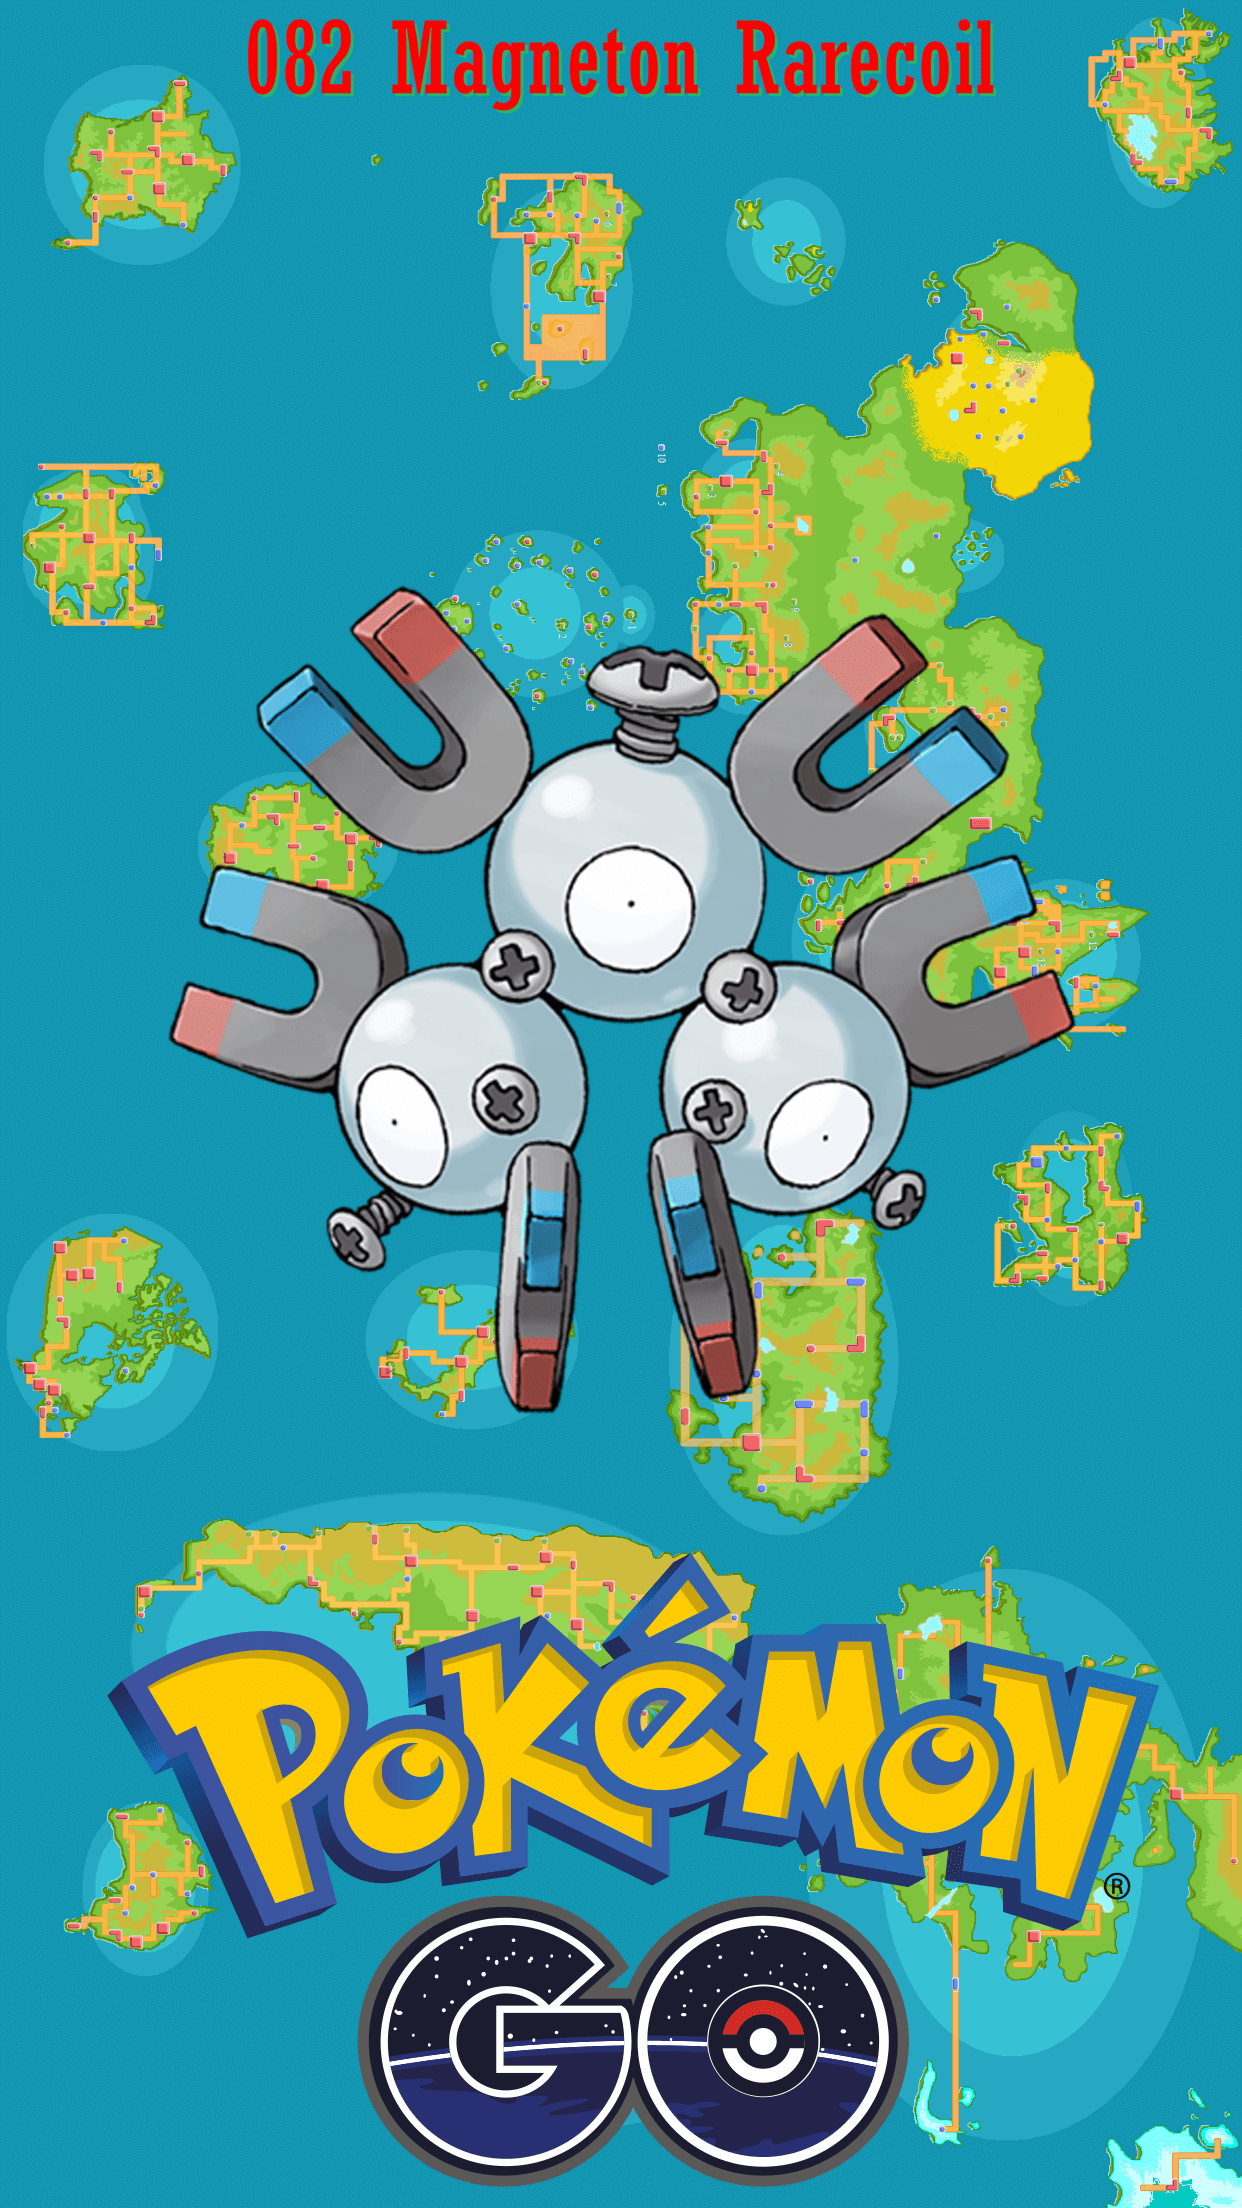 082 Street Map Magneton Rarecoil